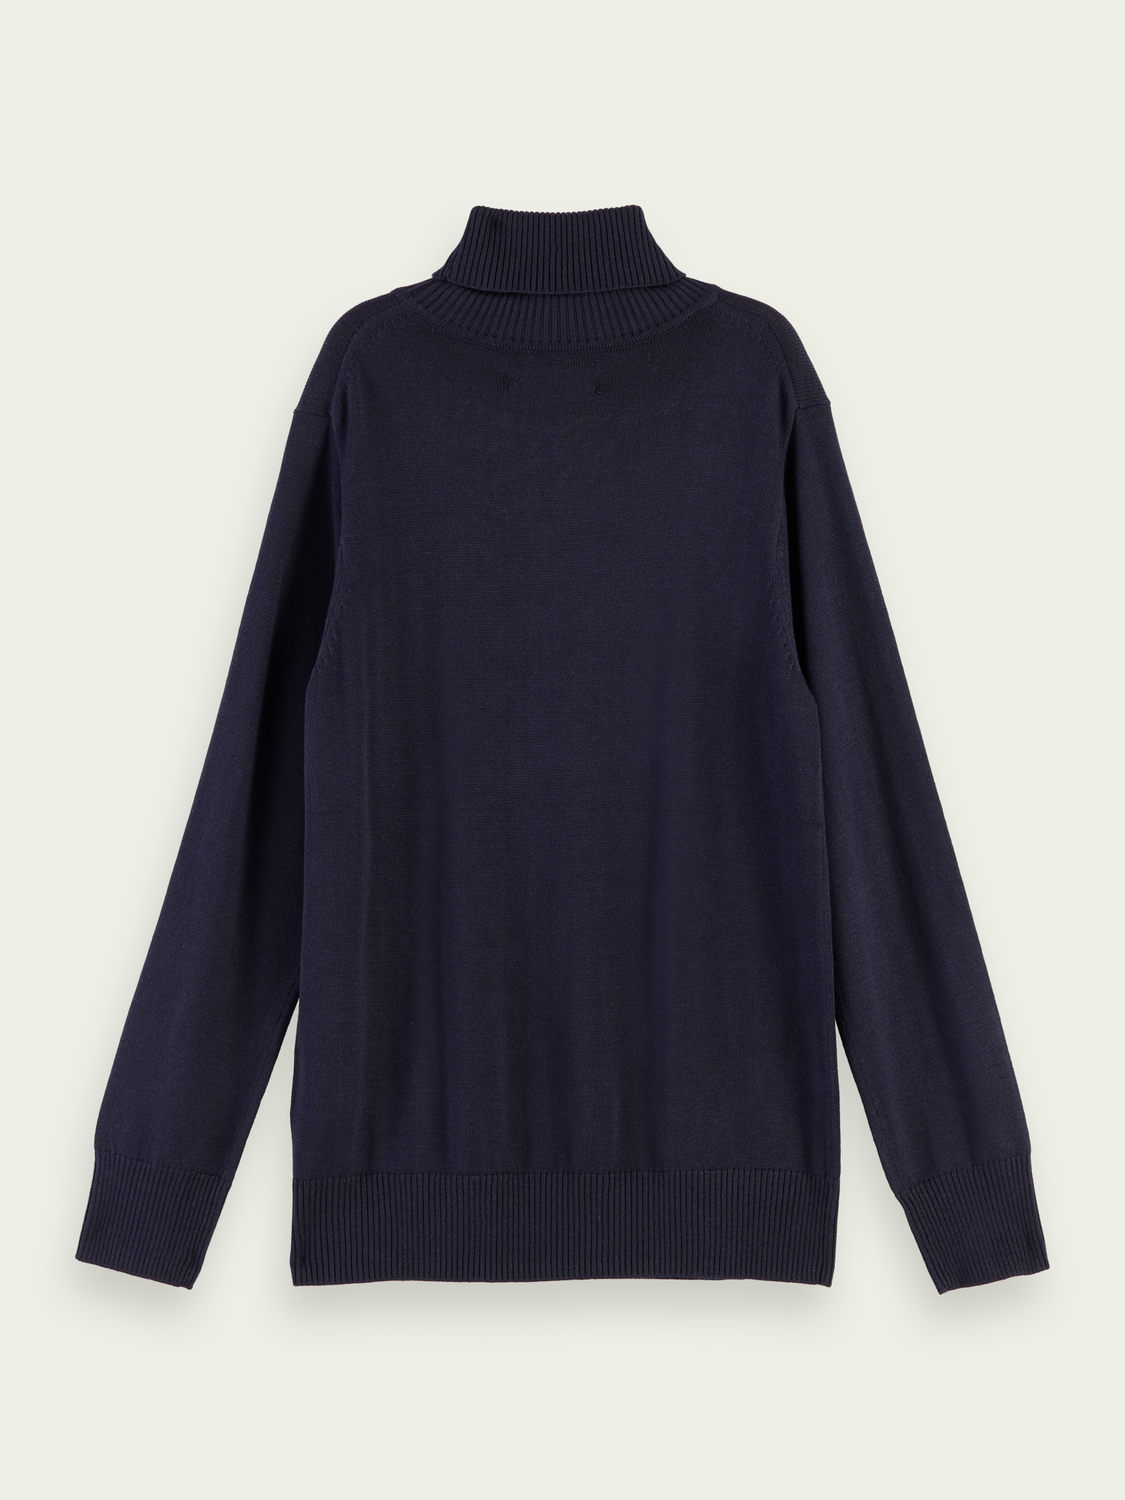 Kids Lightweight turtleneck pullover